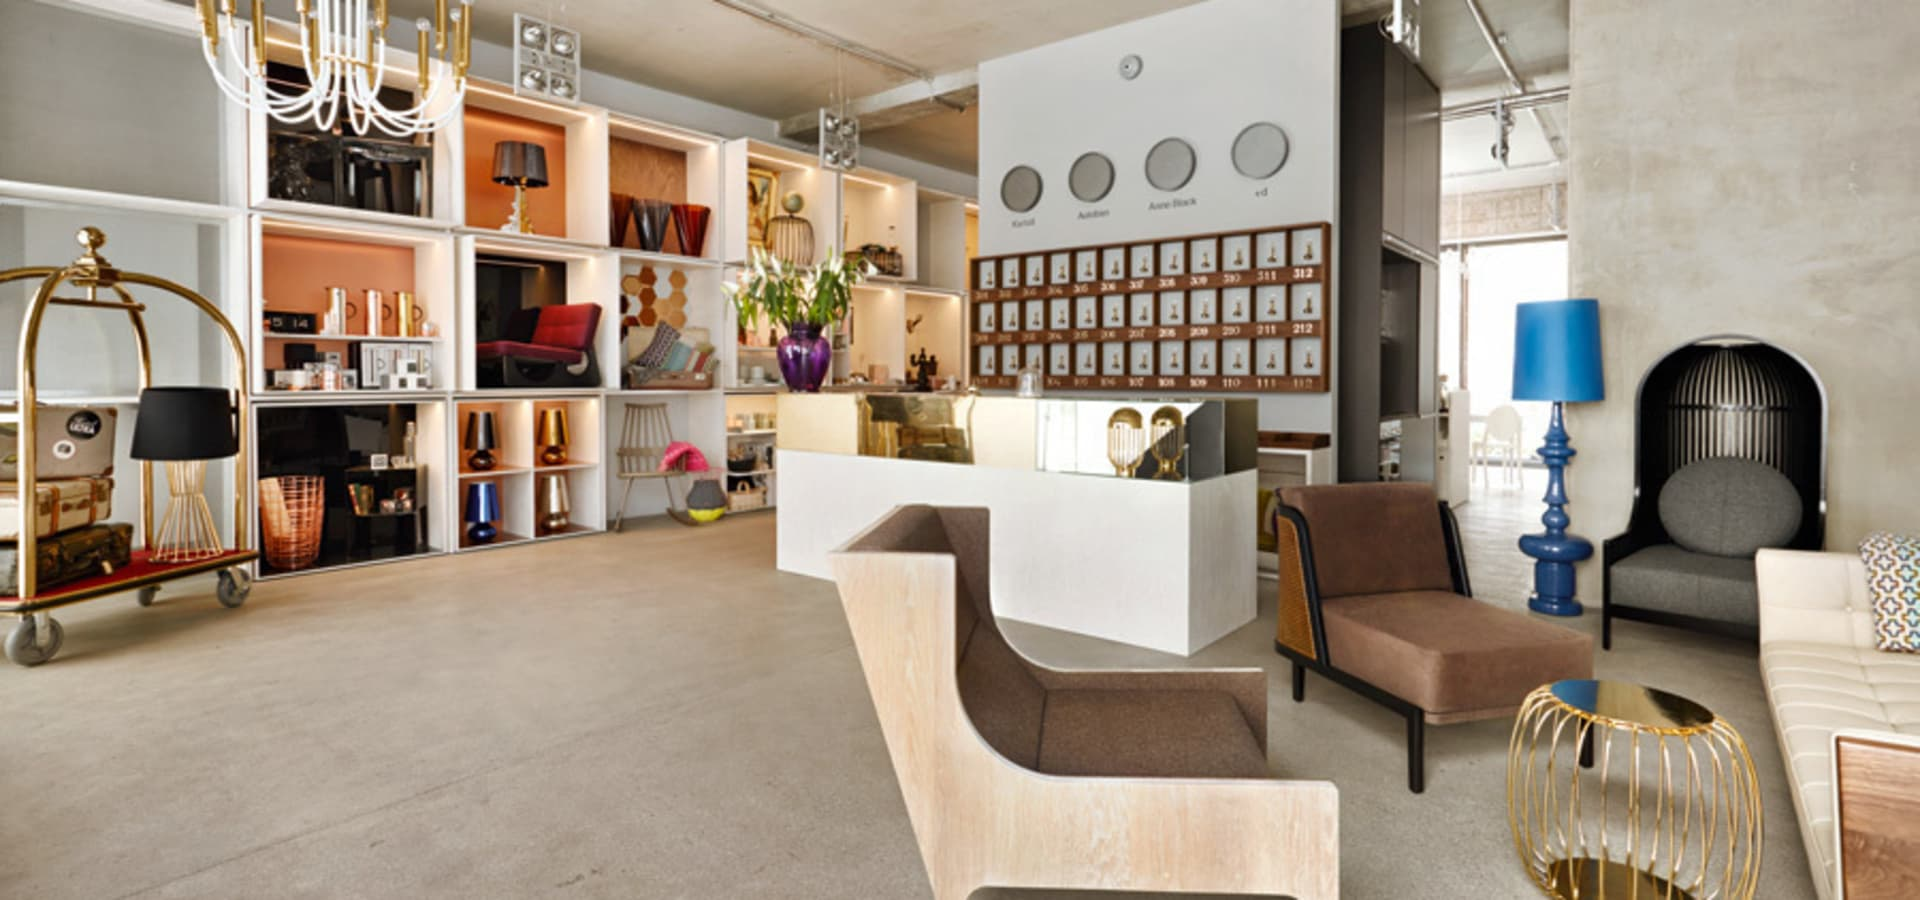 hotel ultra concept store m bel accessoires in berlin homify. Black Bedroom Furniture Sets. Home Design Ideas